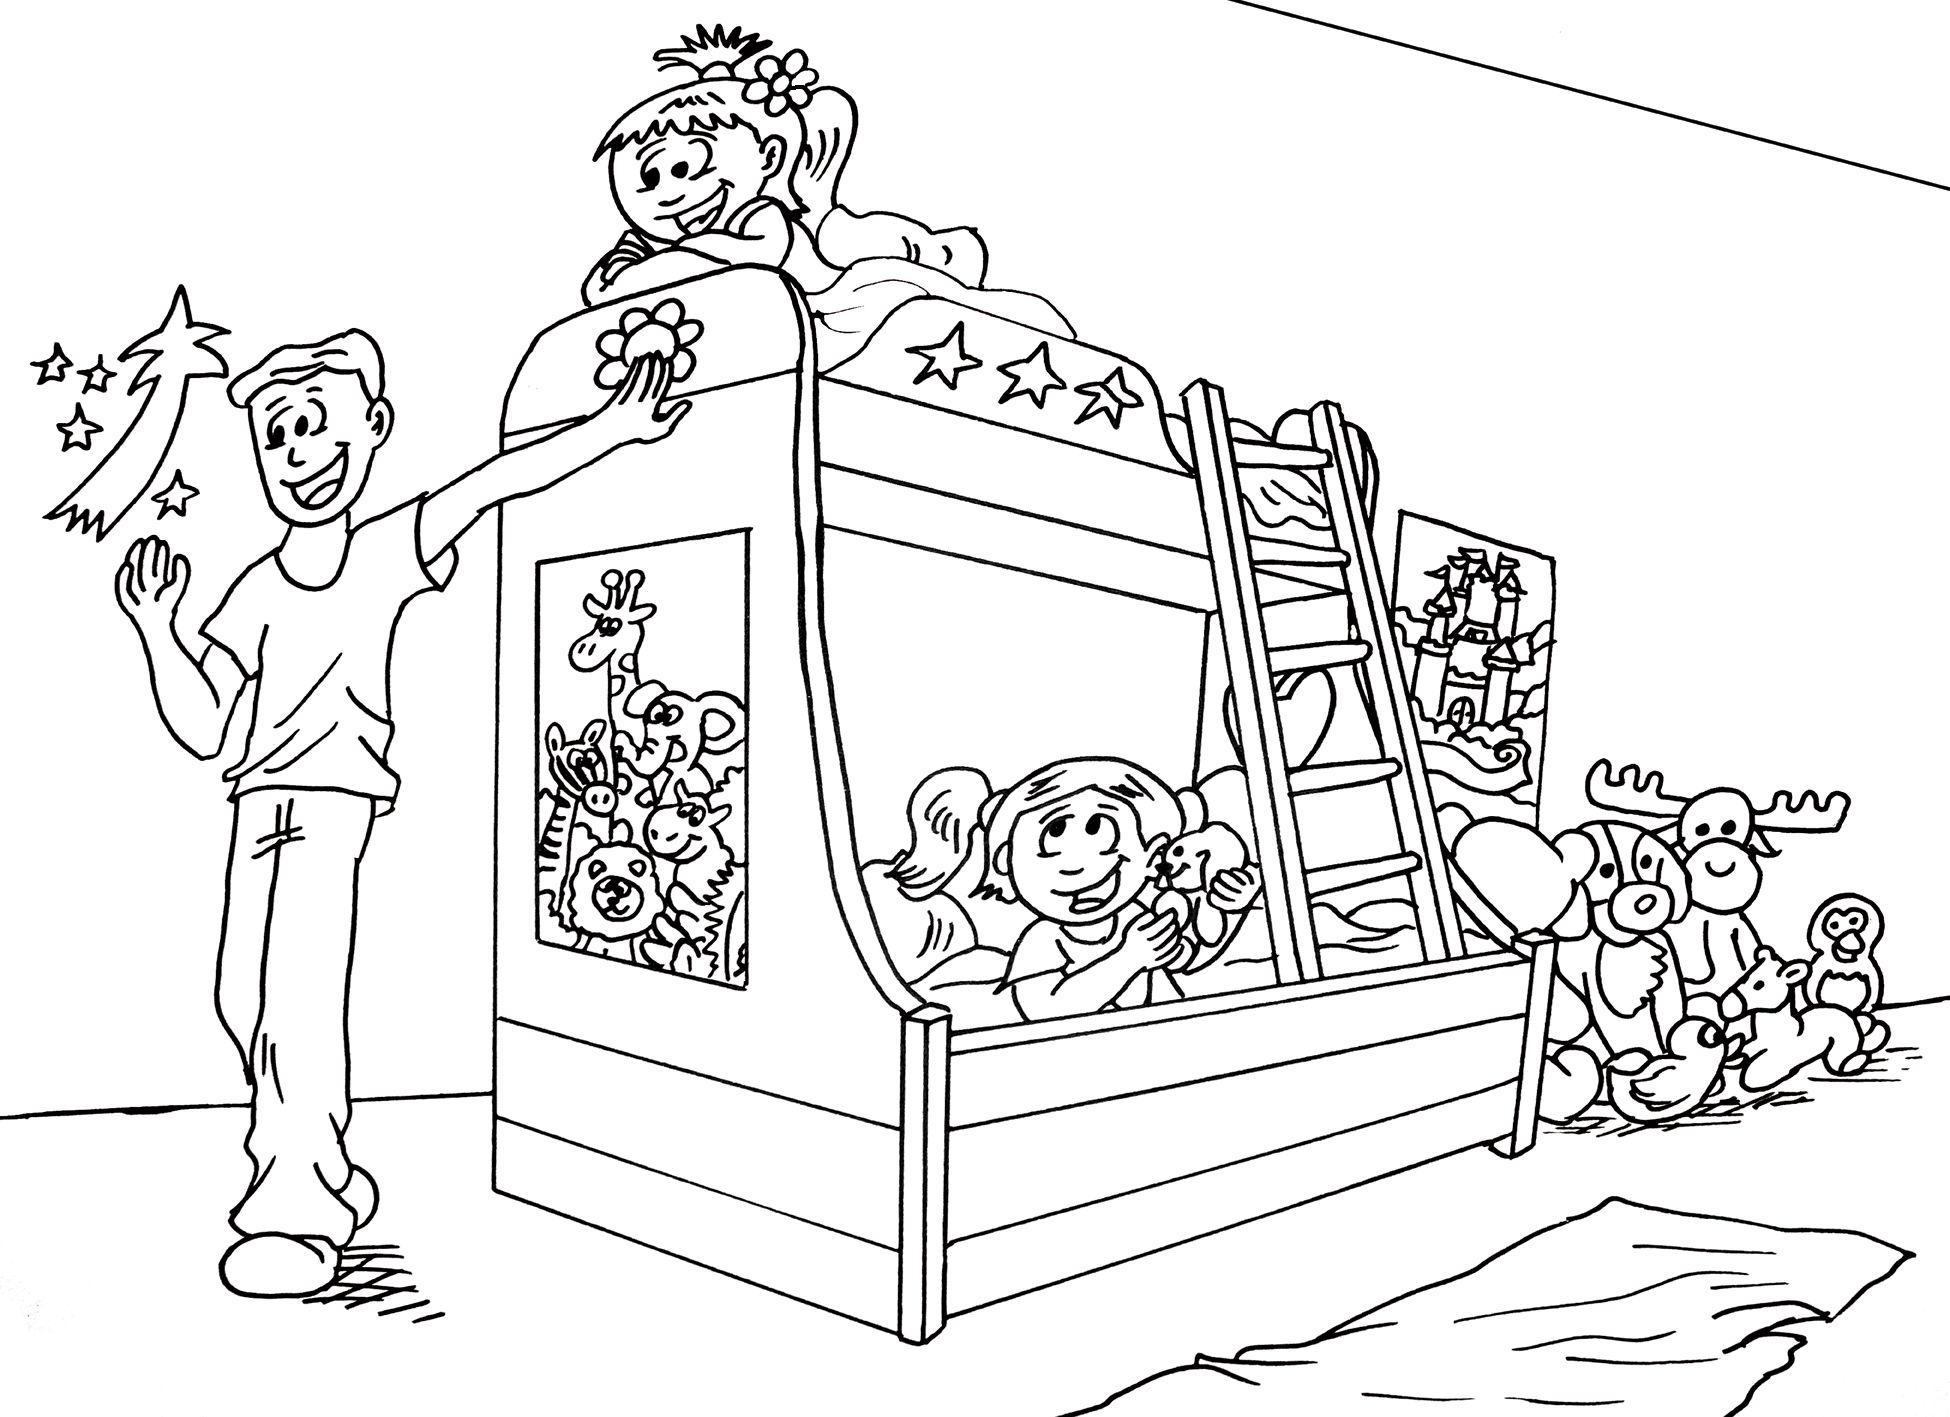 Coloring pages for bedroom - We Have A Coloring Page For You This Is My Bedroom And Cammy S Too Go To Www Findthecutes Com For More Info On Our Fun Search Book